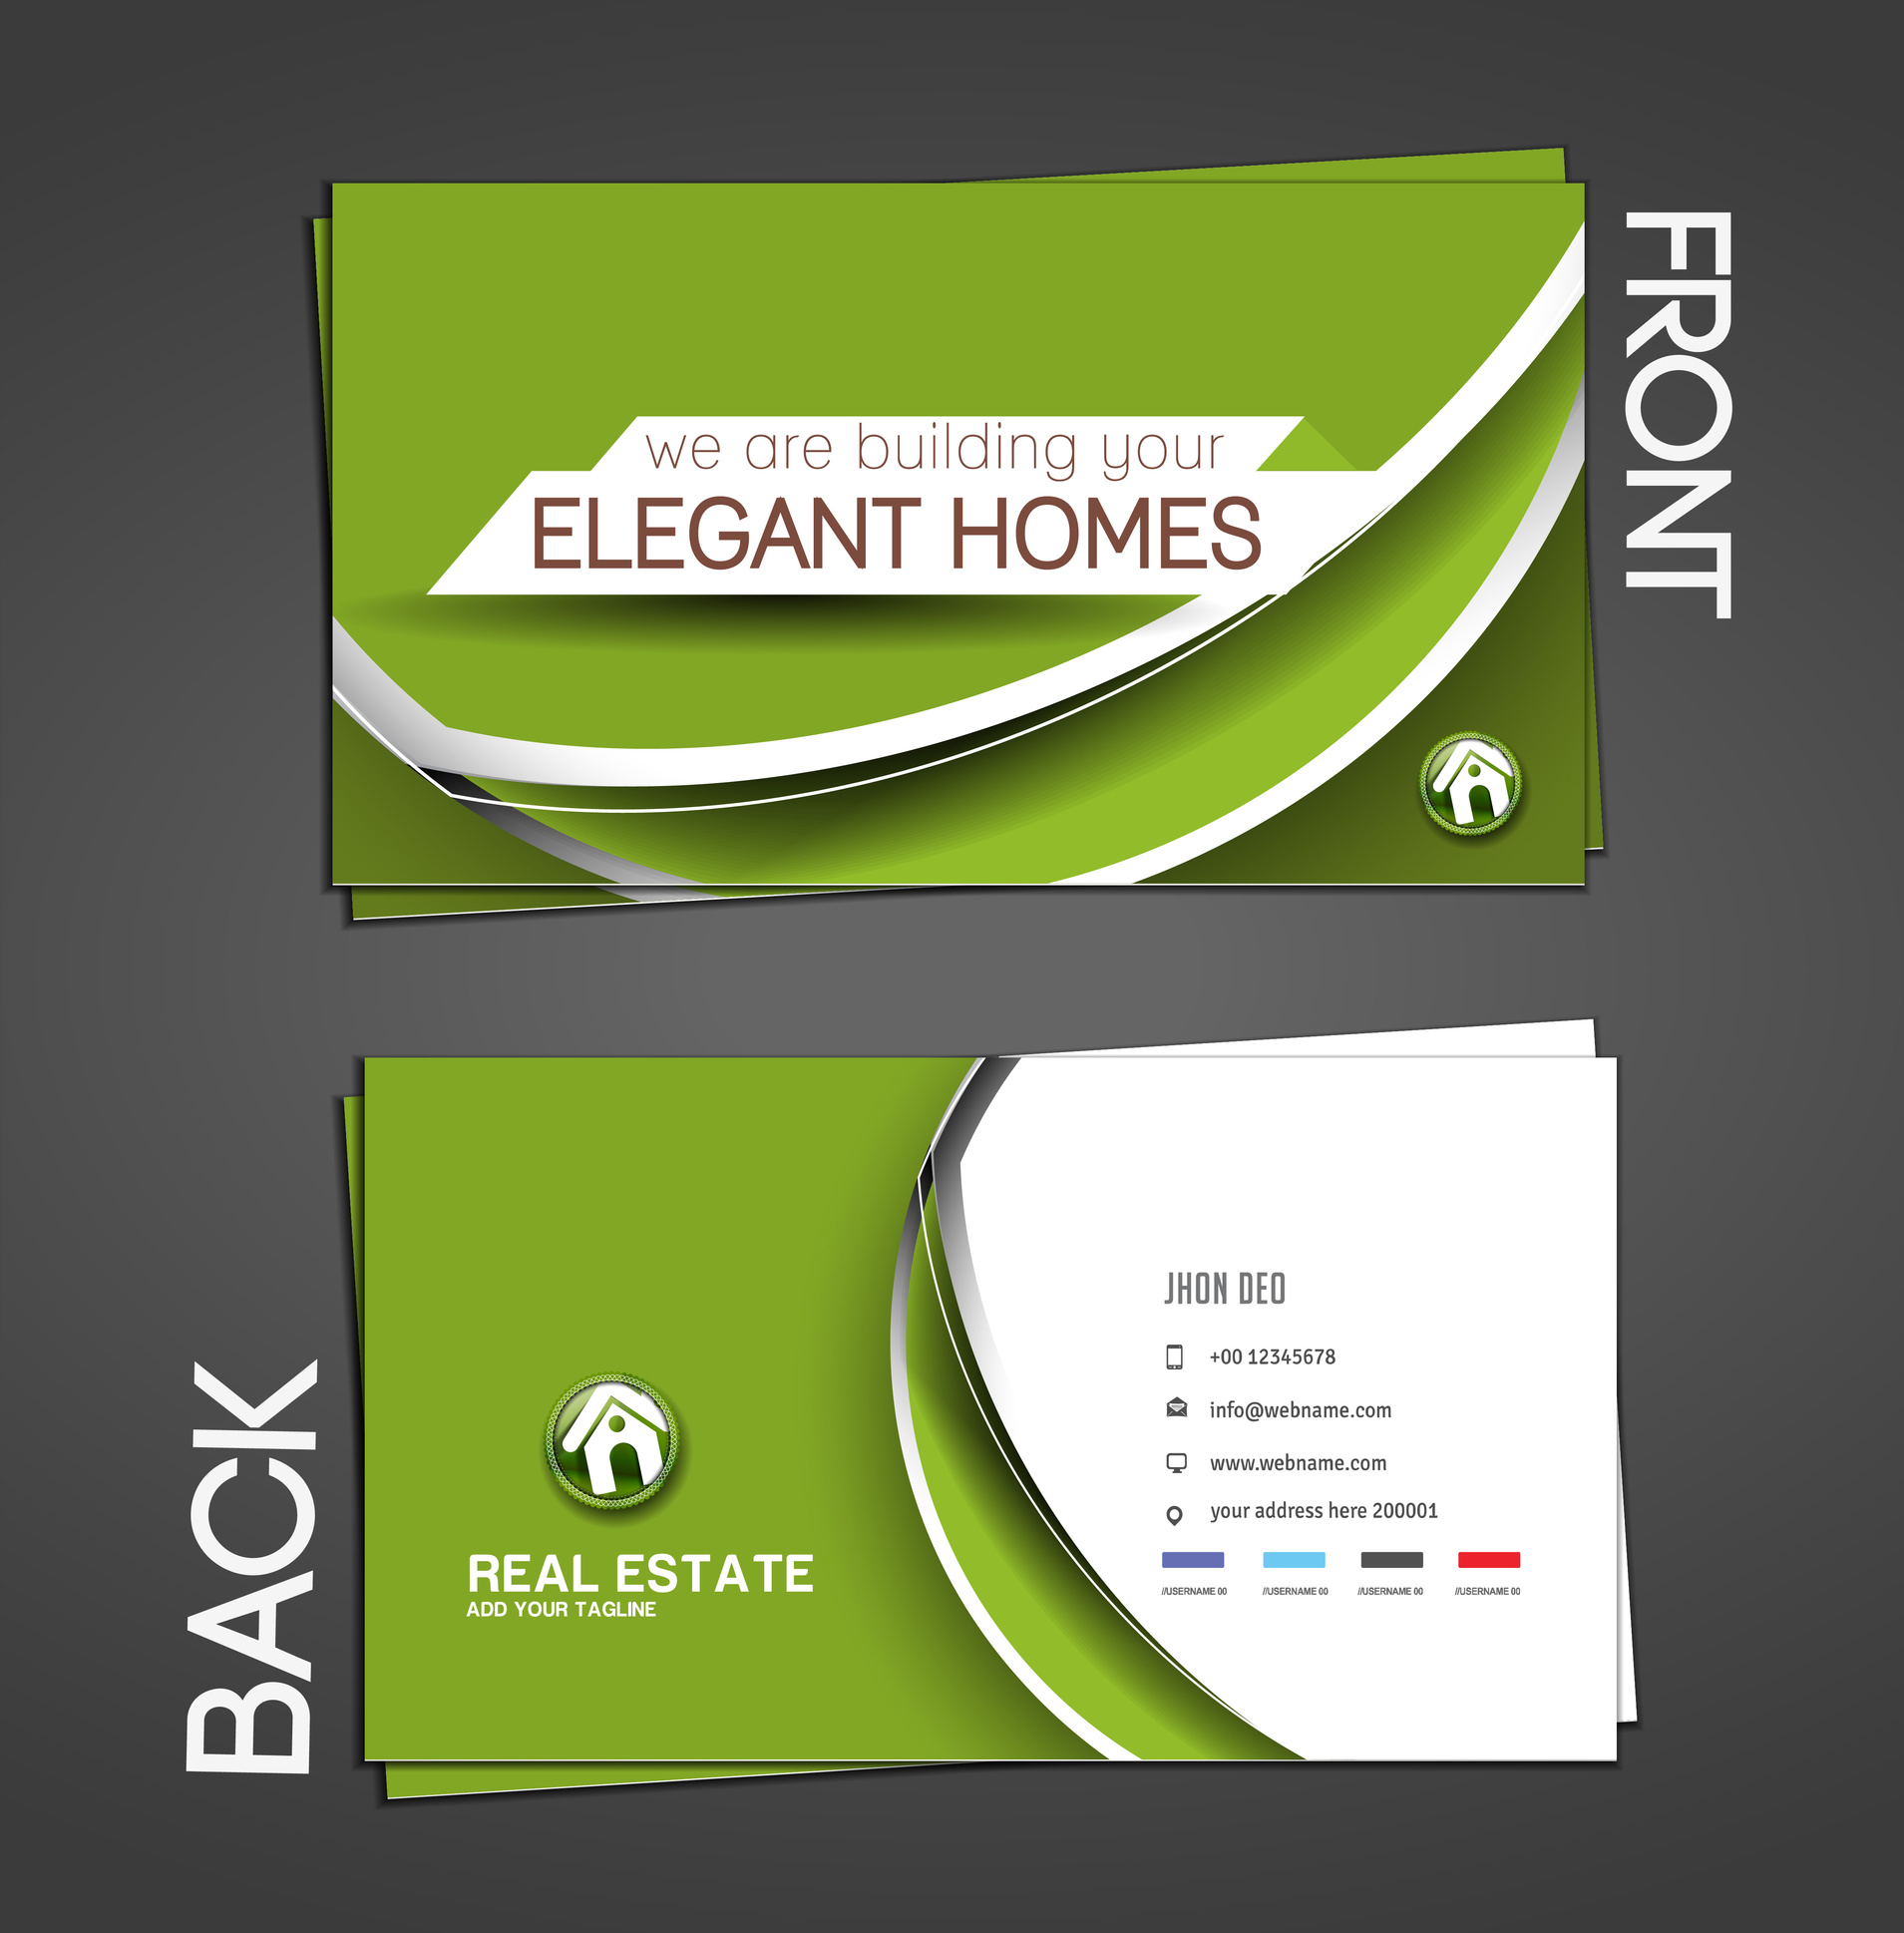 Real Estate Agent Business Cards Realty Studio Design - oukas.info